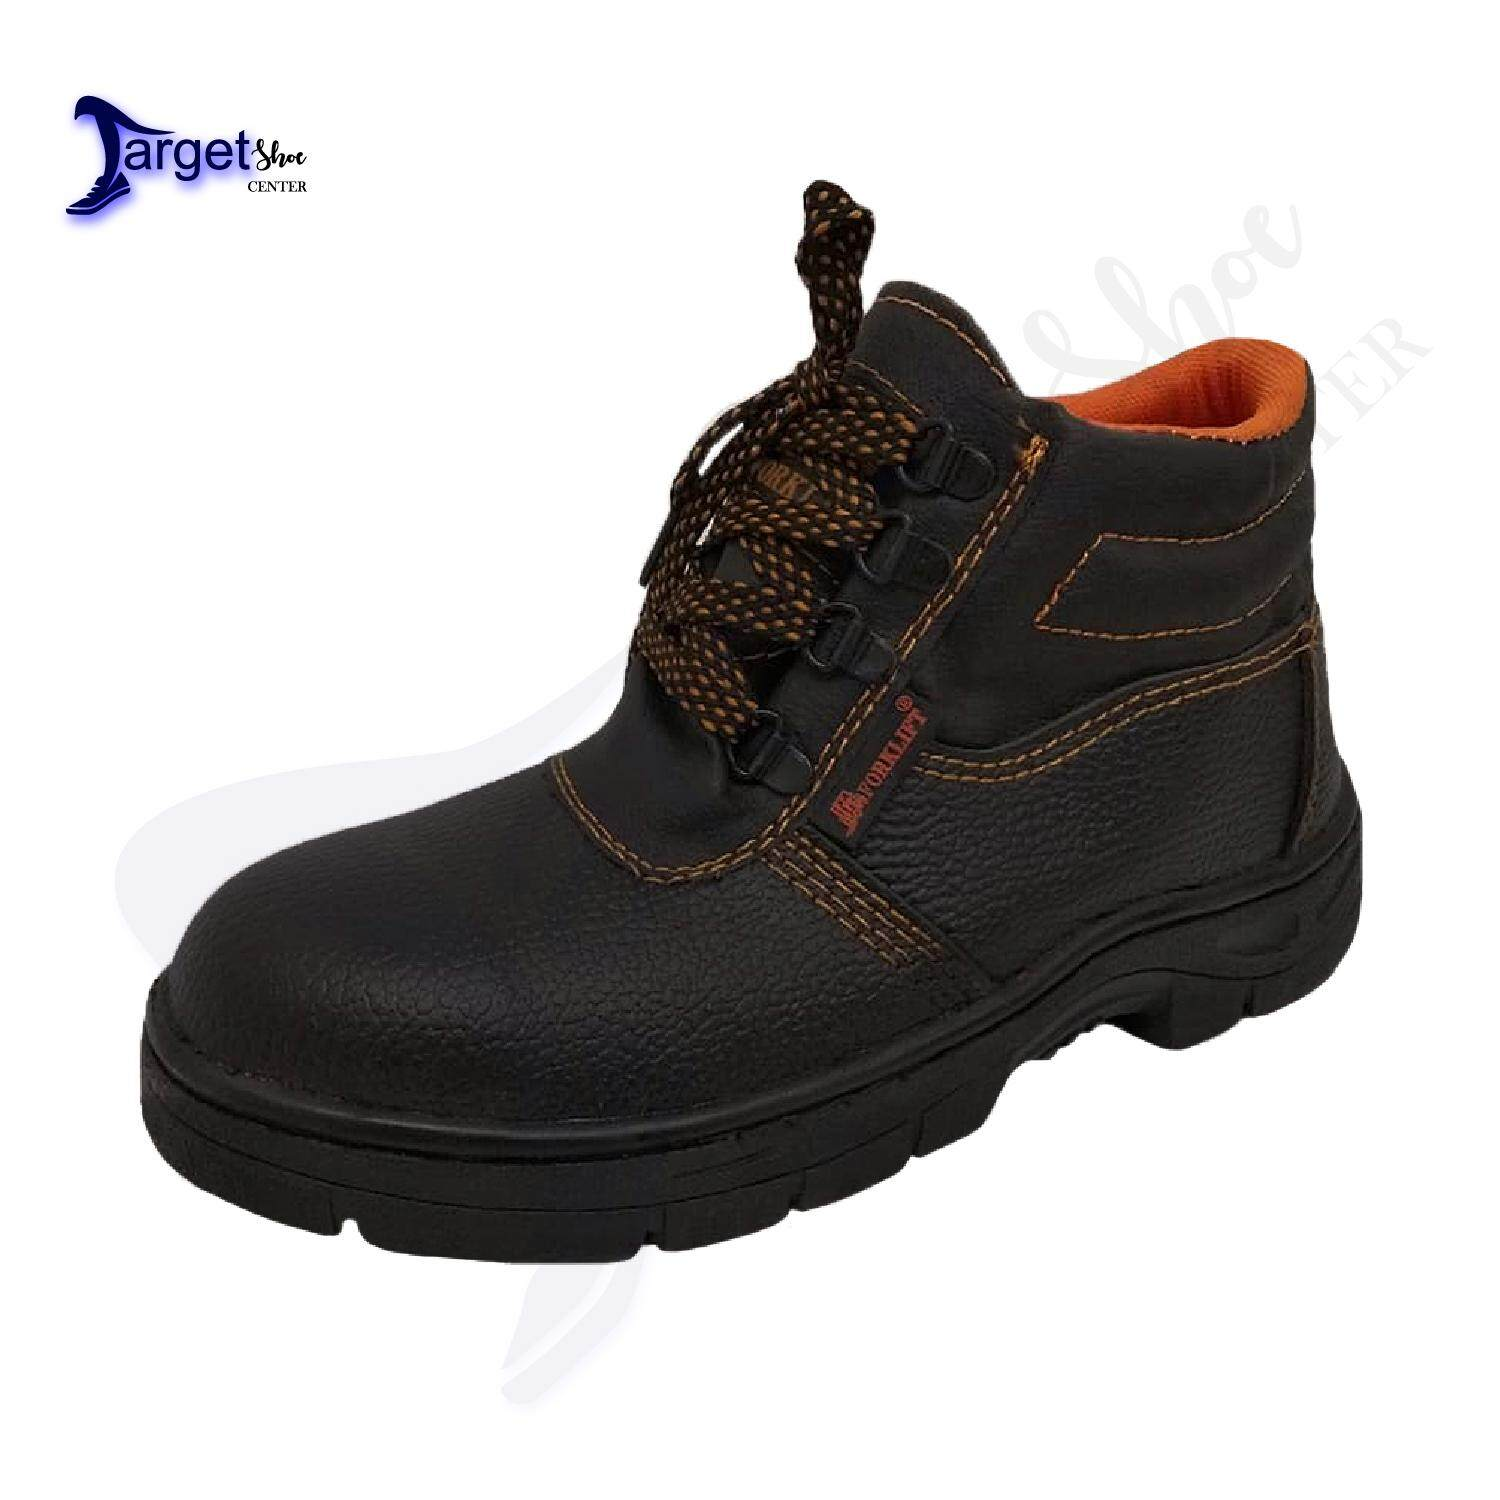 Men Boots Shoes Online With Best Price In Malaysia Sepatu Caterpillar Low Suede Safety Boot Shoe Middle Cut